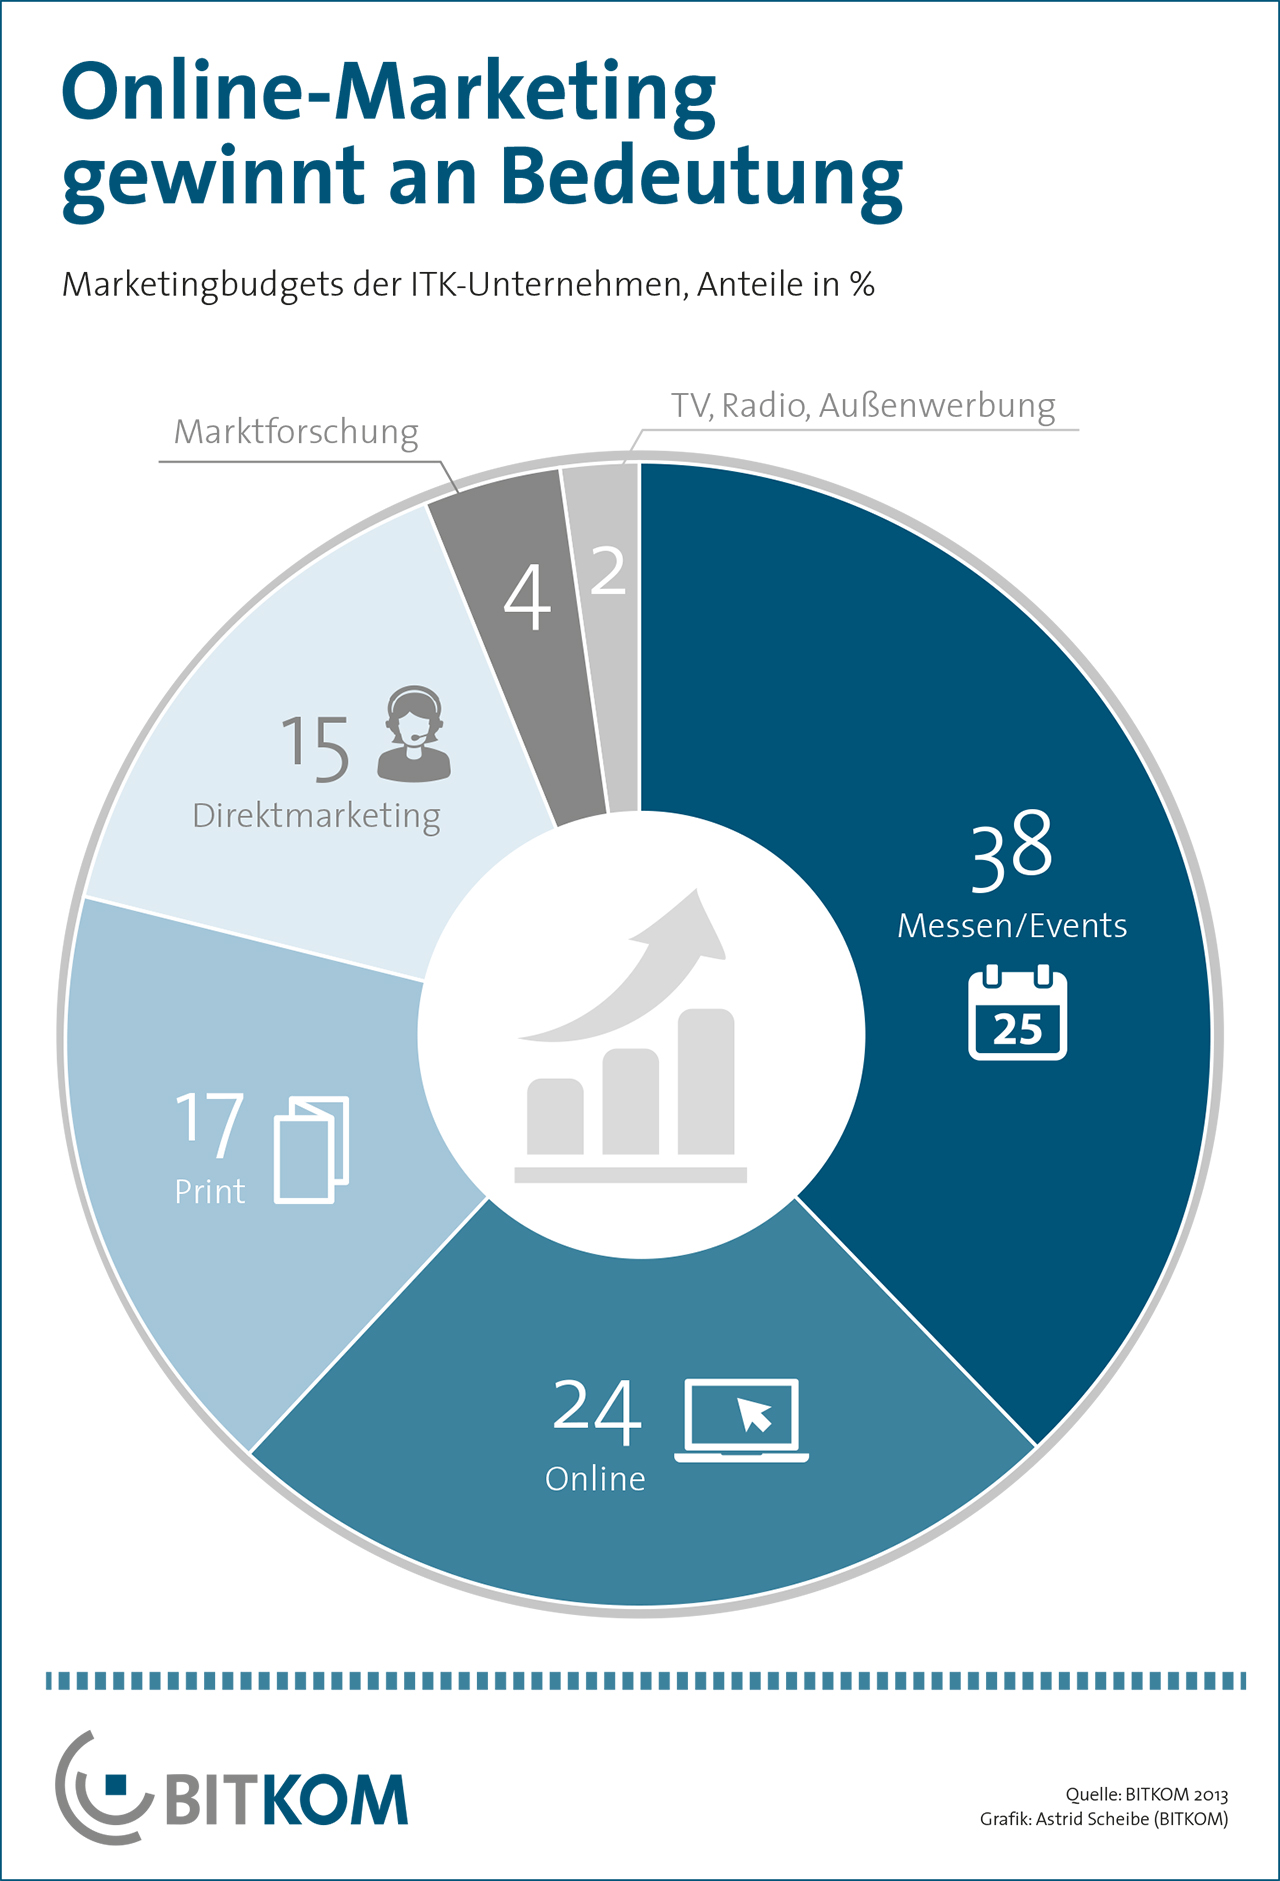 ITK-Unternehmen: Marketing Investitionen 2013